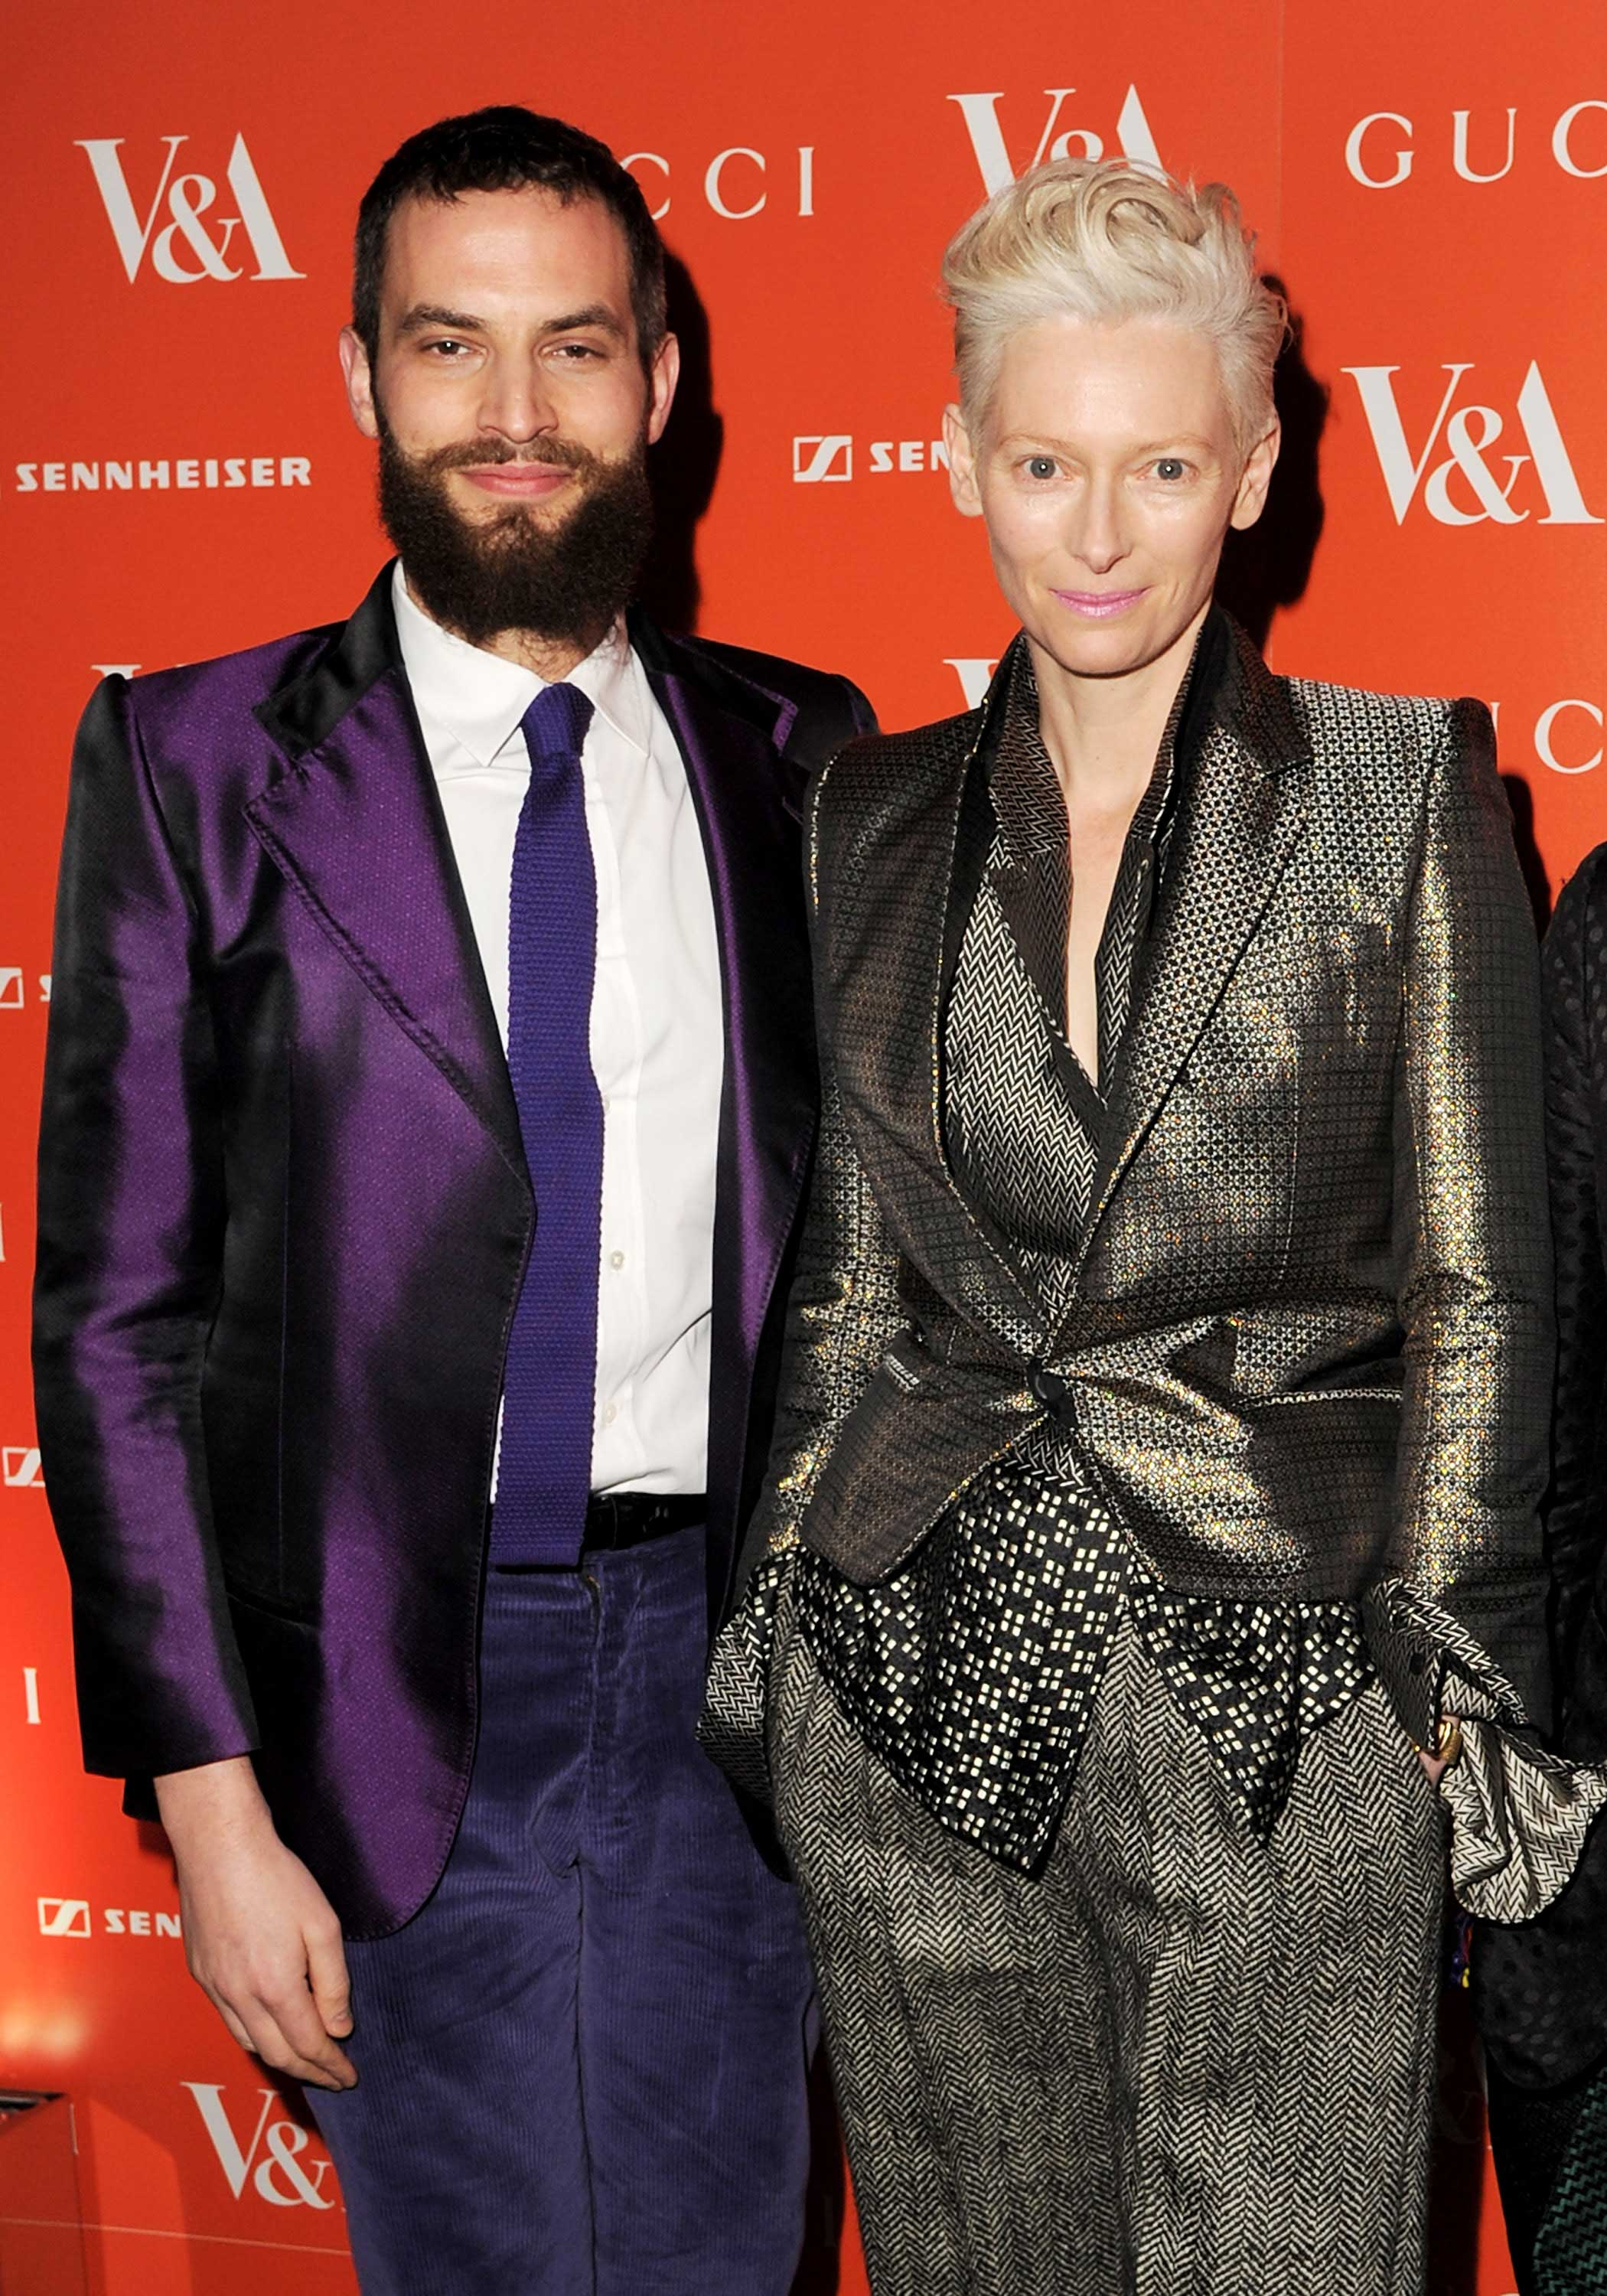 Sandro Kopp, left, and Tilda Swinton, right, attend the private viewing for the David Bowie Is exhibition at the Victoria and Albert Museum on March 20, 2013 in London.